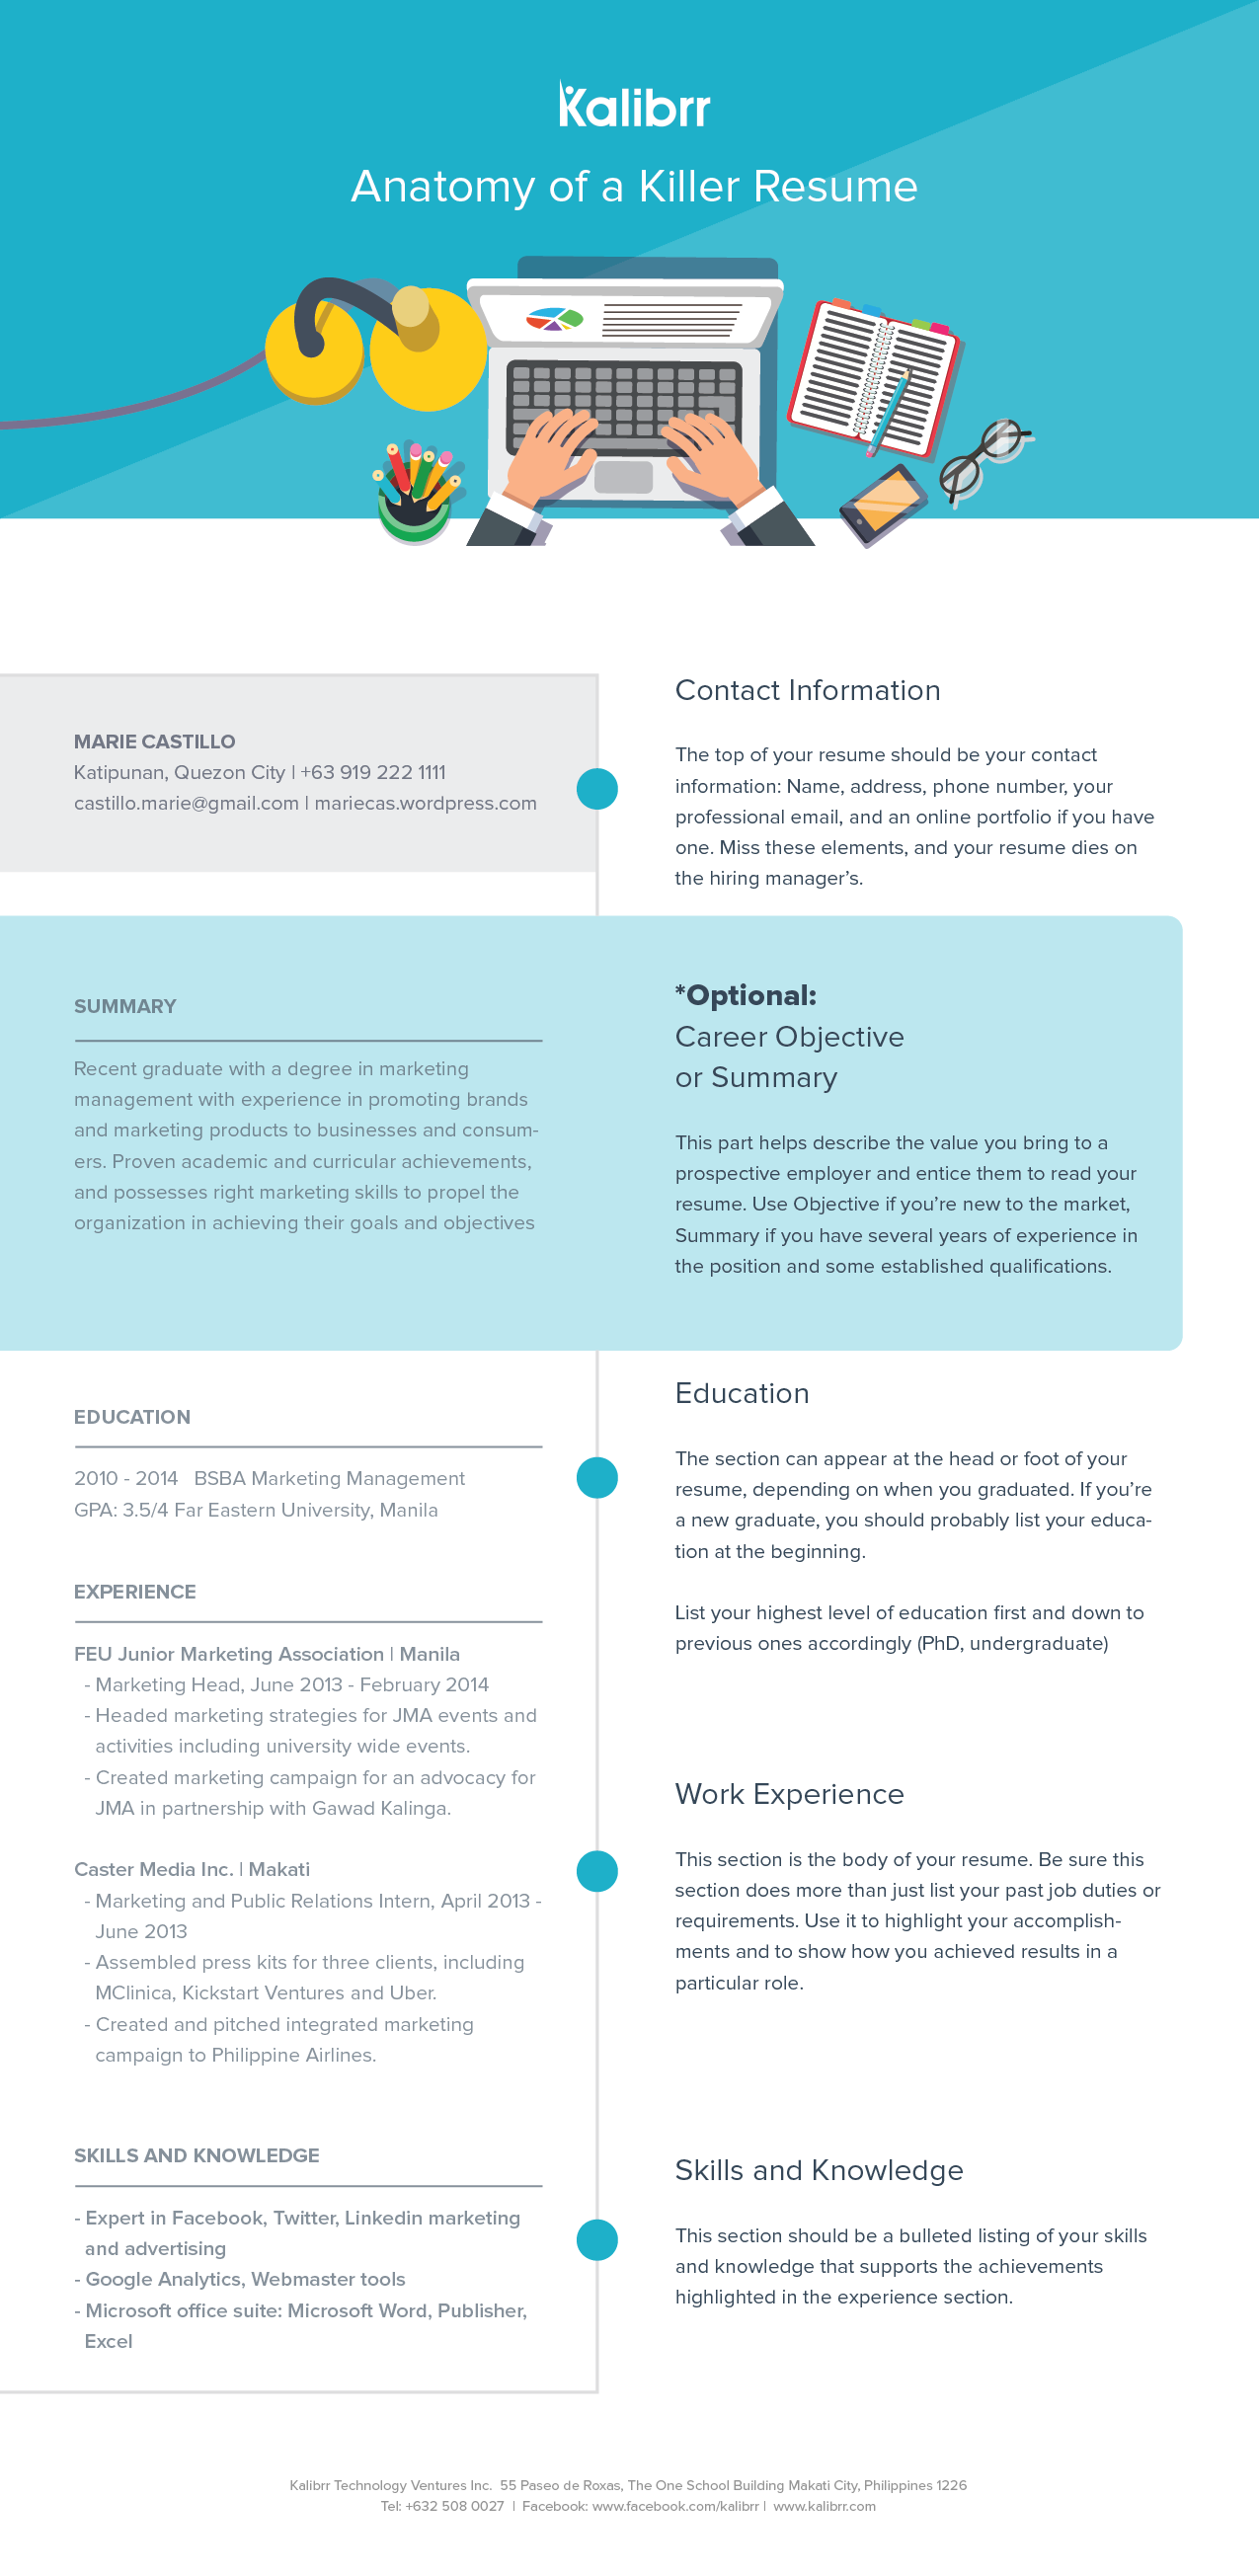 The Anatomy of a Killer Resume INFOGRAPHICKalibrr Career Advice